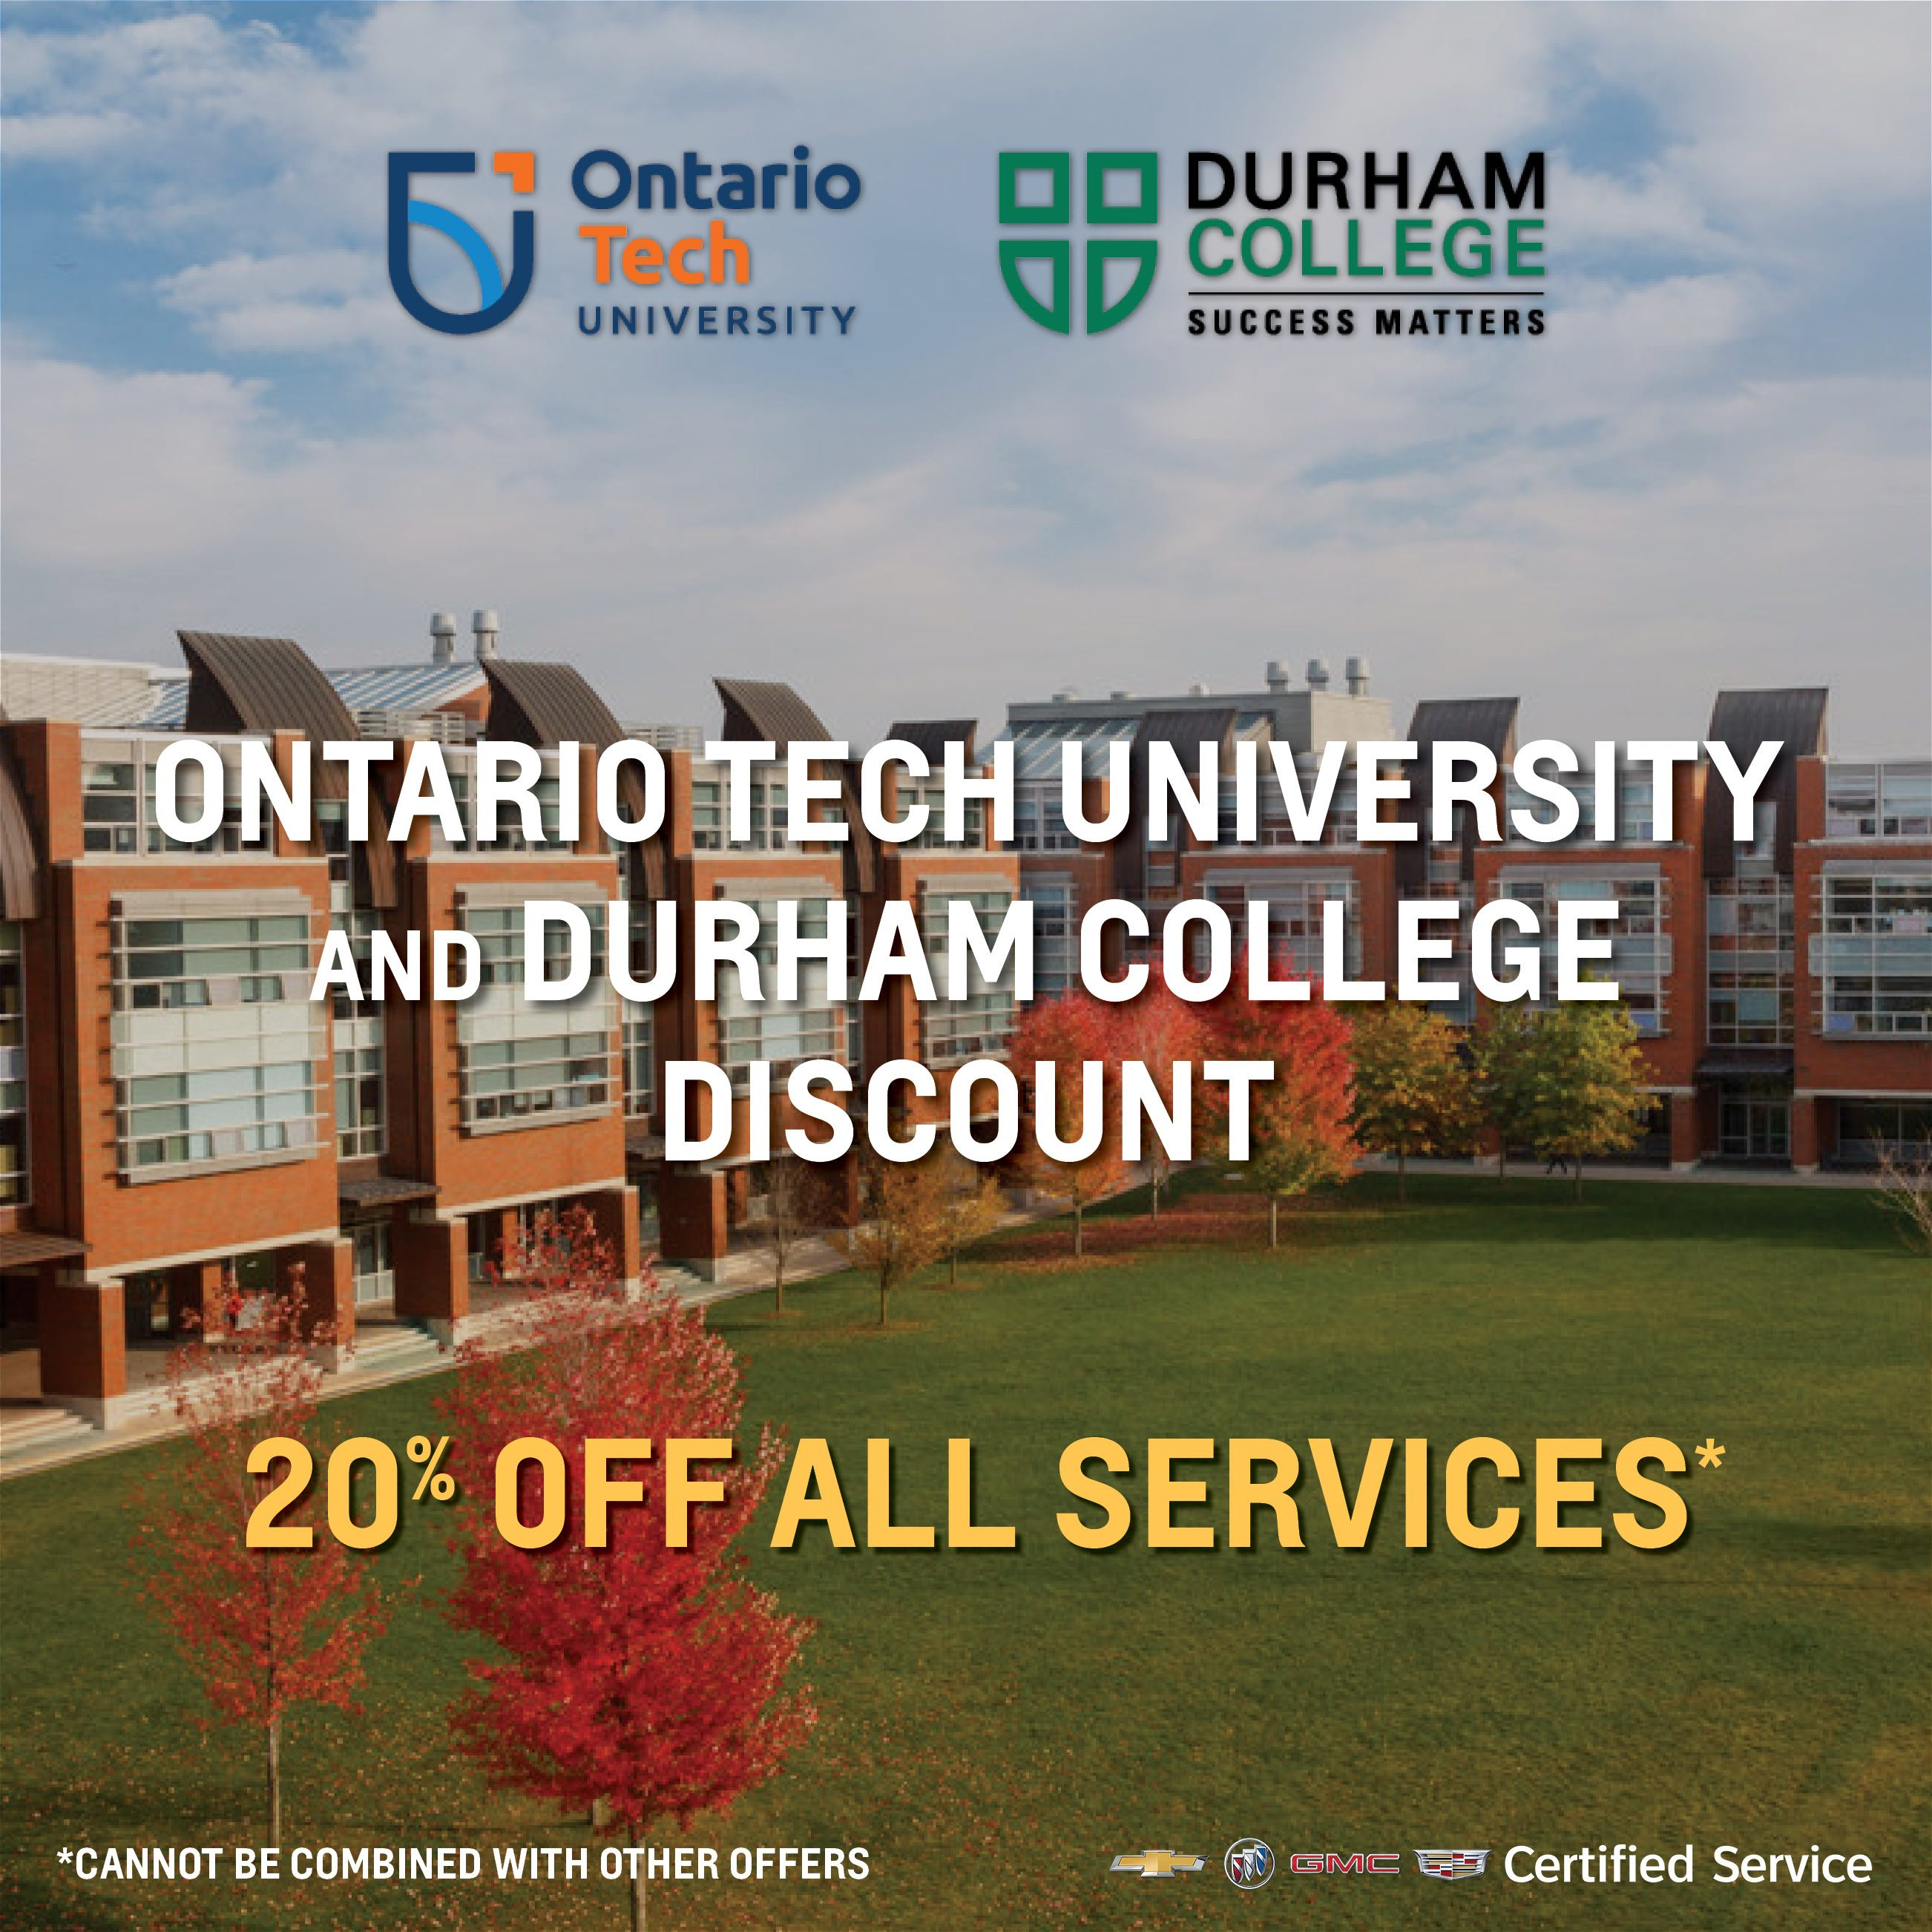 Ontario Tech University and Durham College Offer